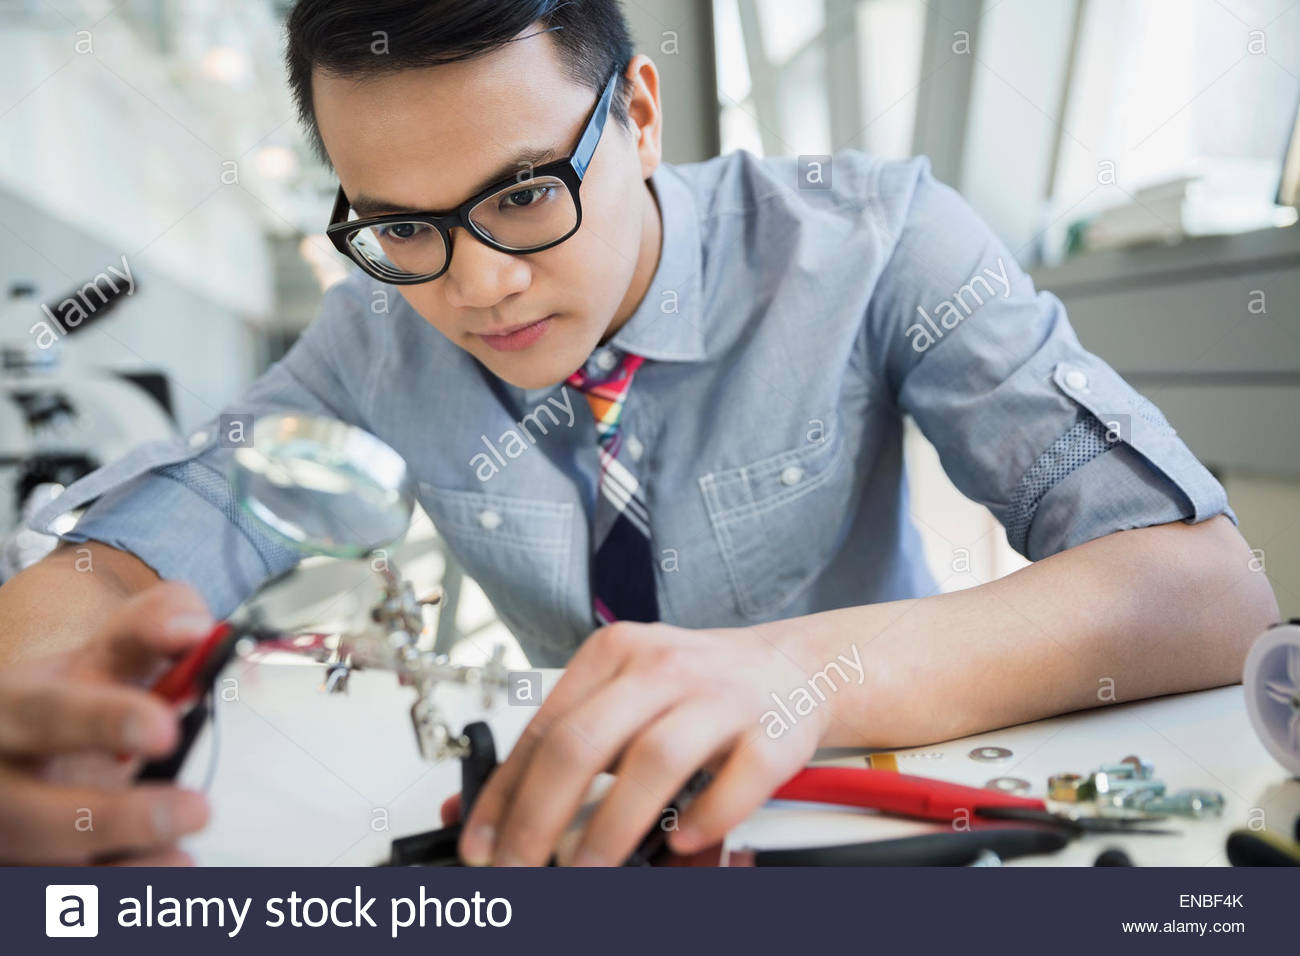 Engineer examining and assembling technology - Stock Image